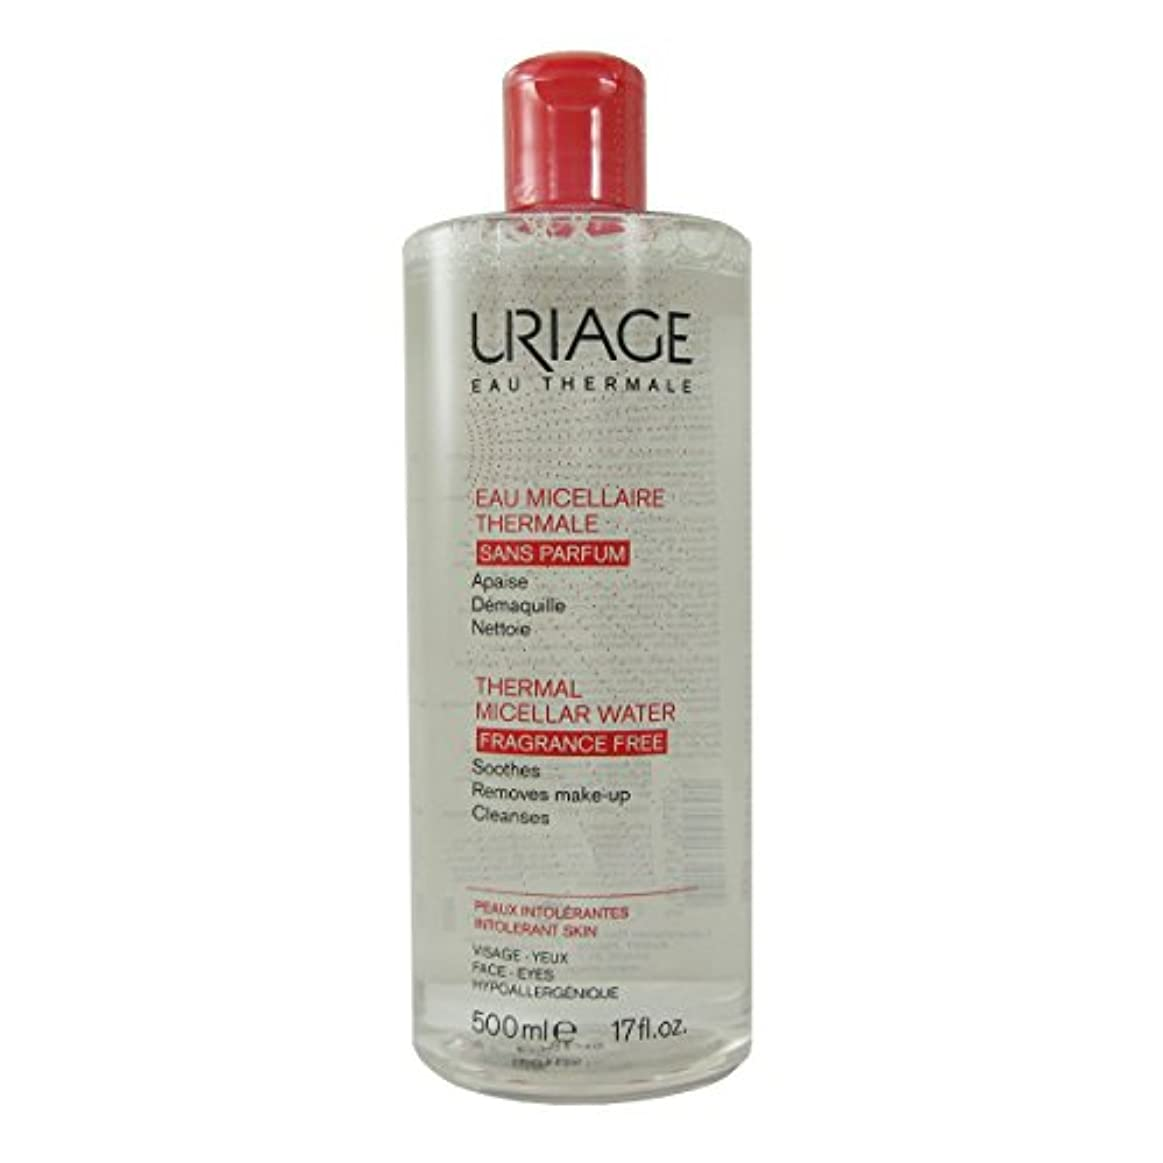 脇に後ろに小説Uriage Thermal Micellar Water Fragrance Free Intolerant Skin 500ml [並行輸入品]